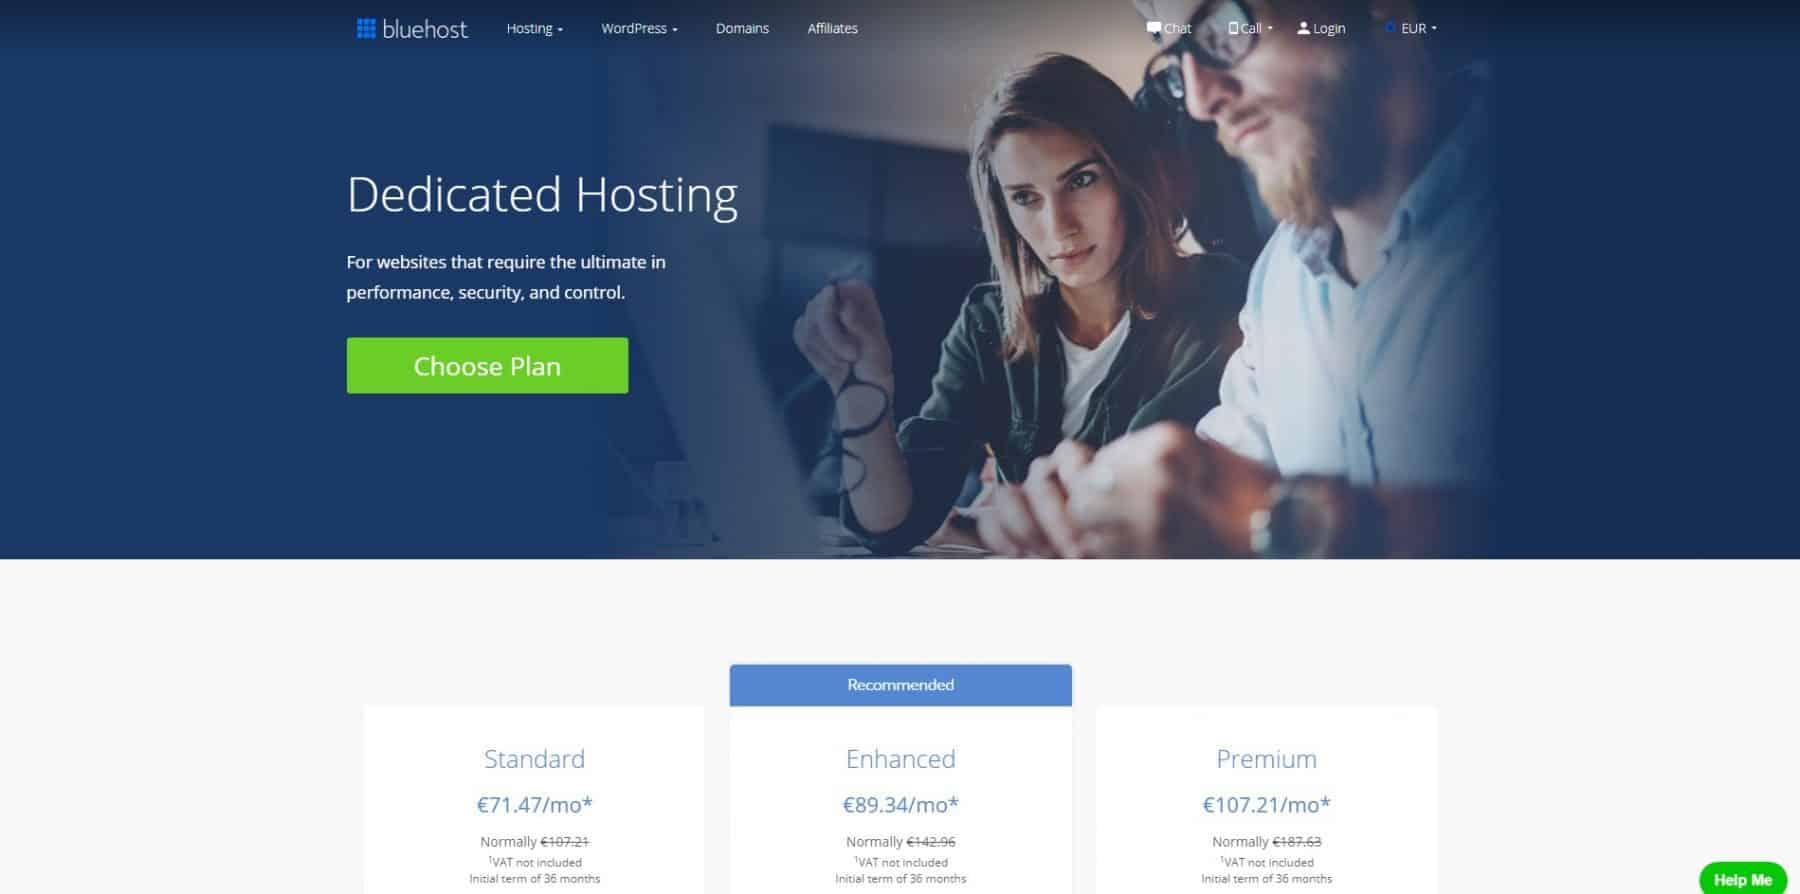 bluehost dedicated